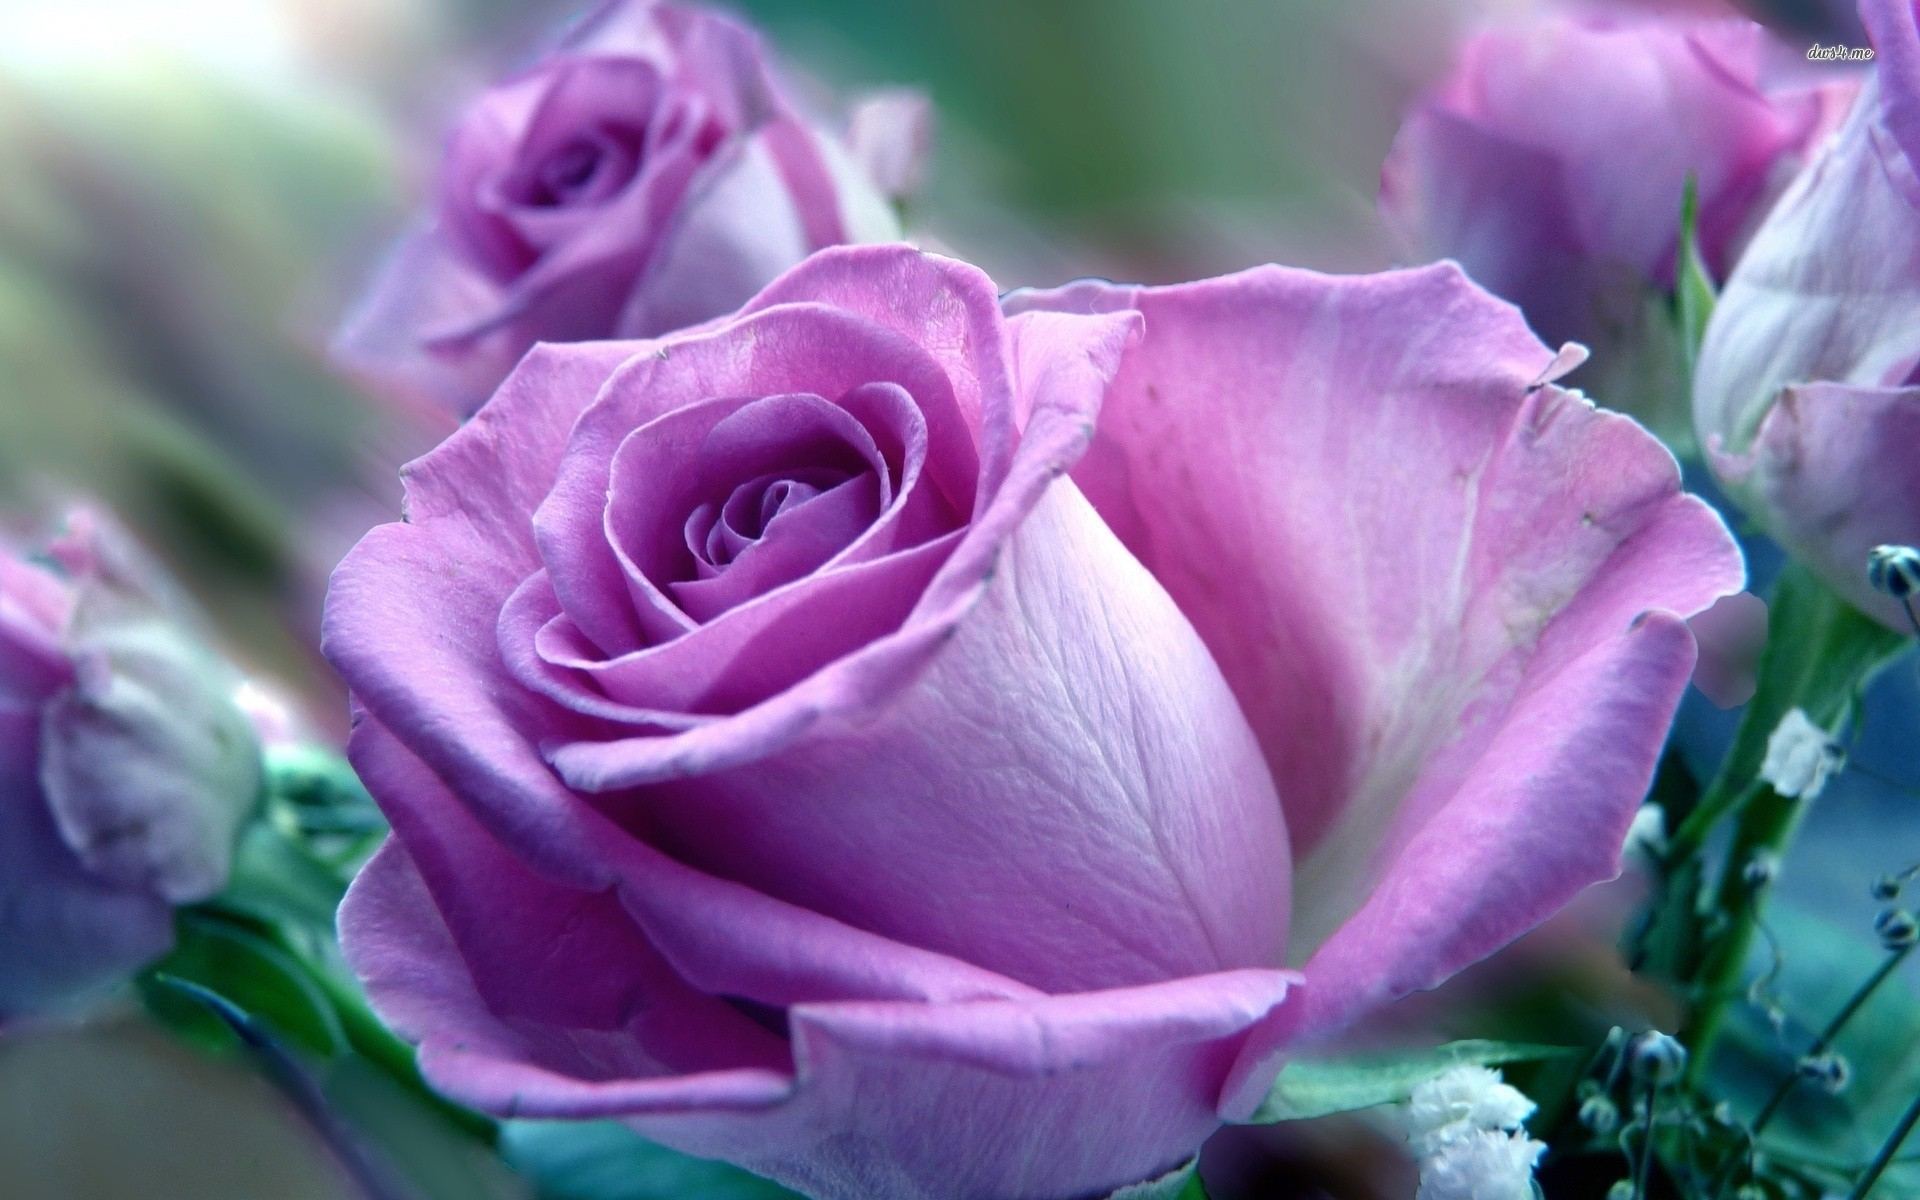 Res: 1920x1200, Title : purple and pink roses wallpaper | purple rose wallpaper - flower.  Dimension : 1920 x 1200. File Type : JPG/JPEG